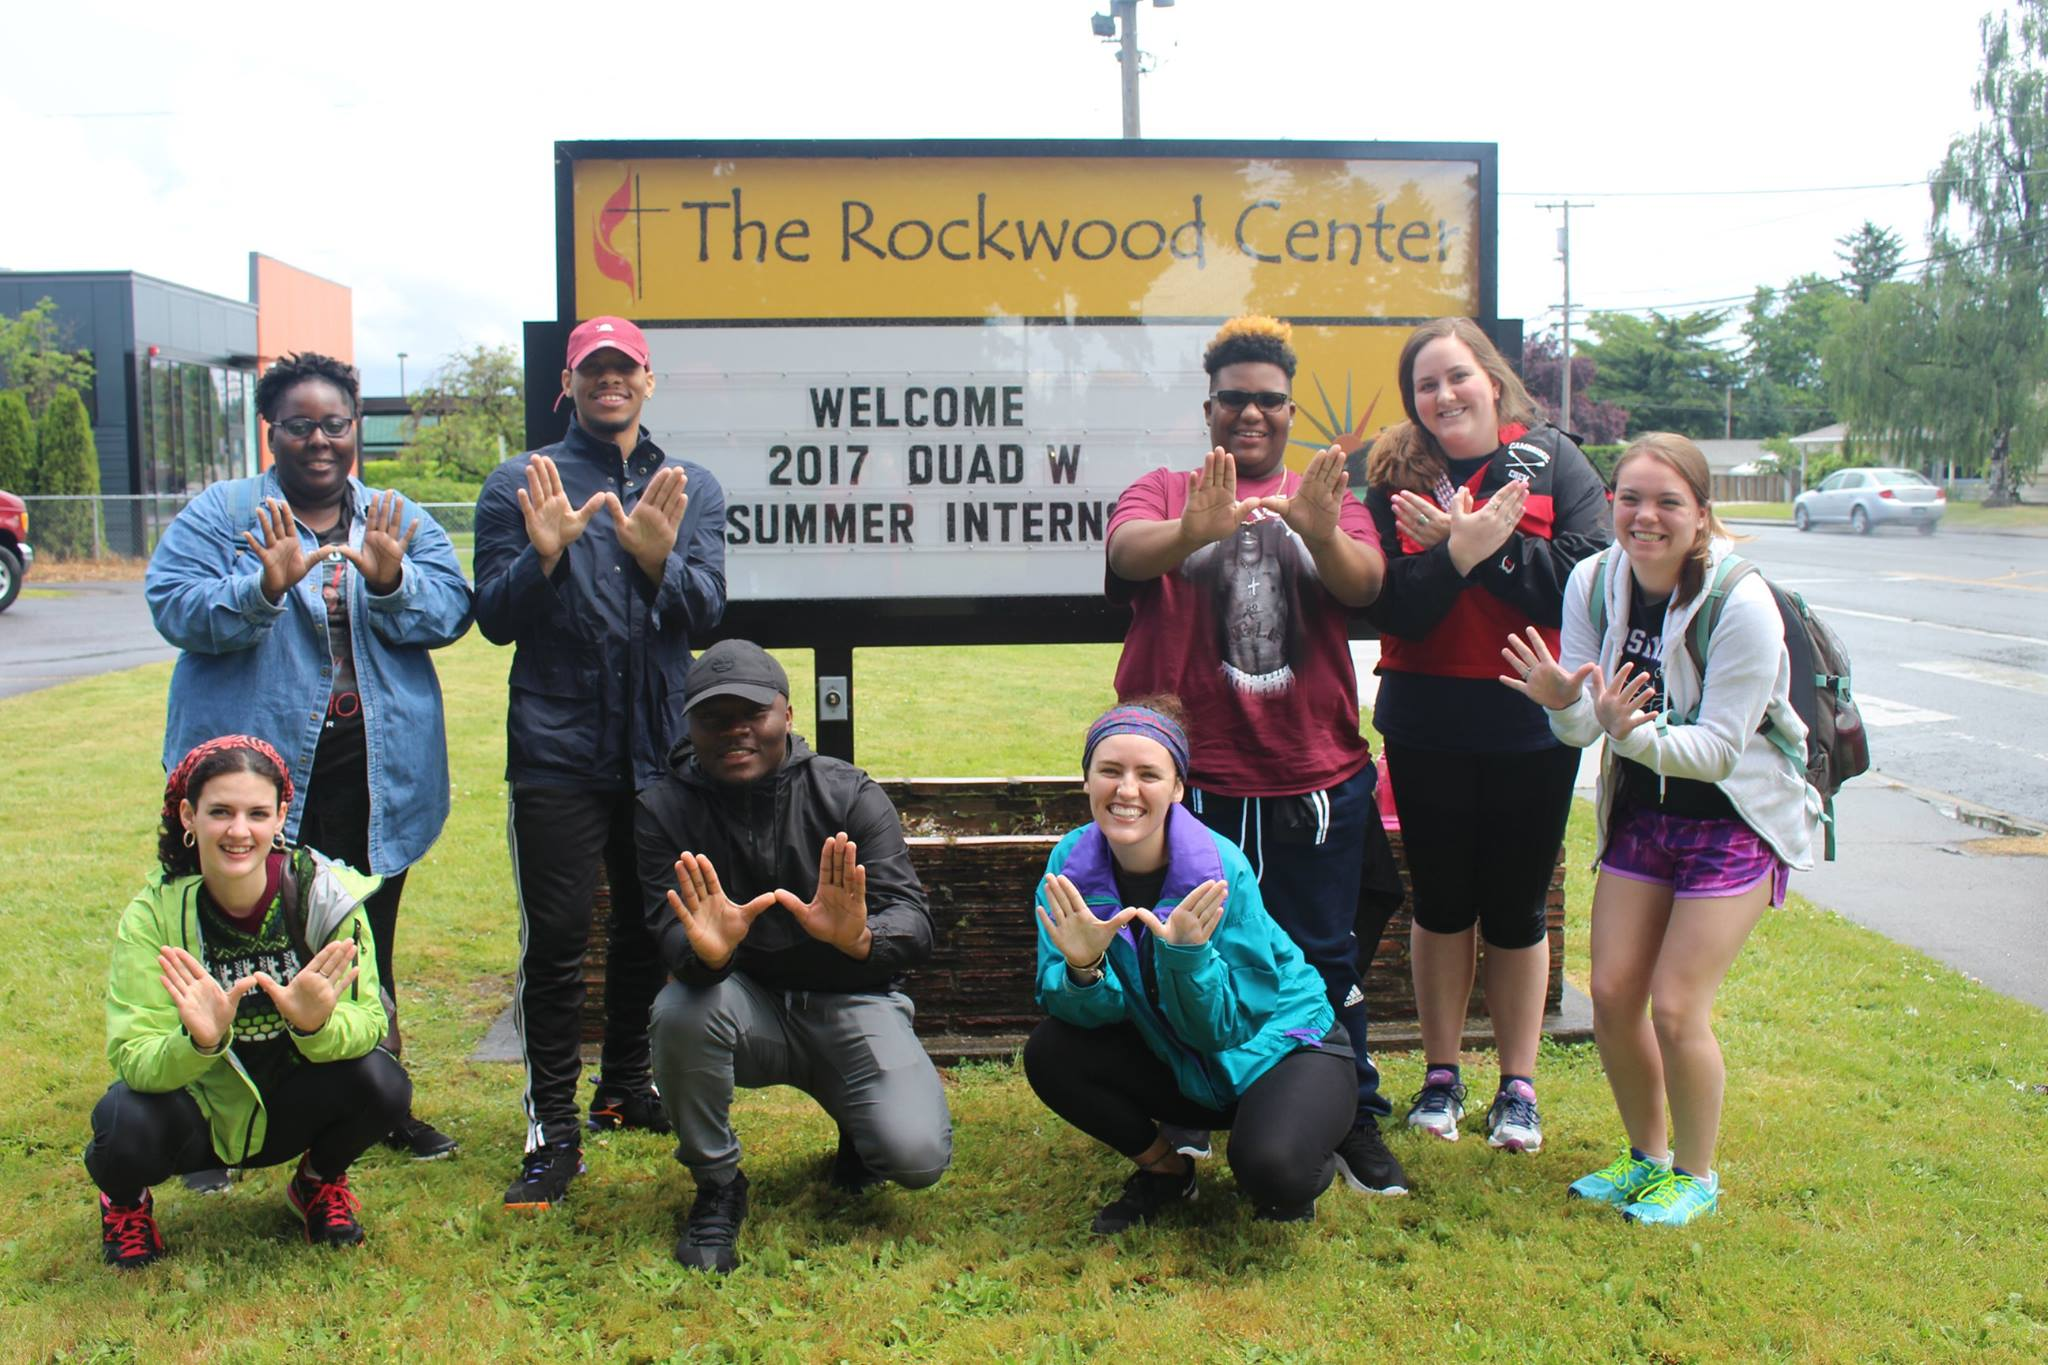 QuadW-Portland-interns-rockwood-mission-center